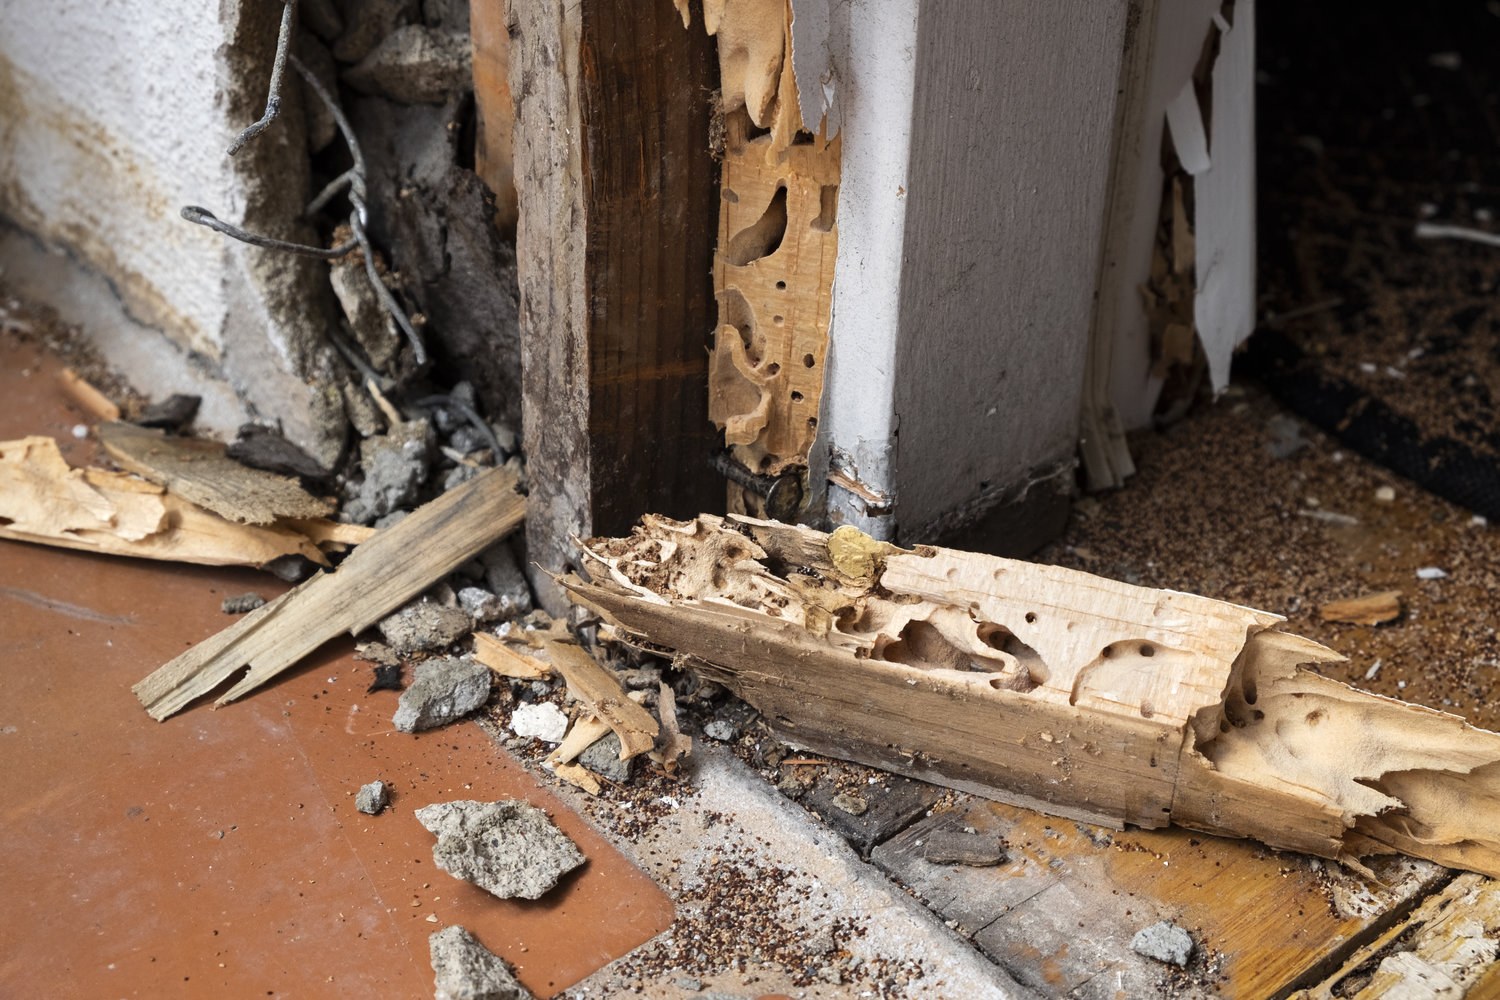 Best company for termite extermination in Suffolk County, NY